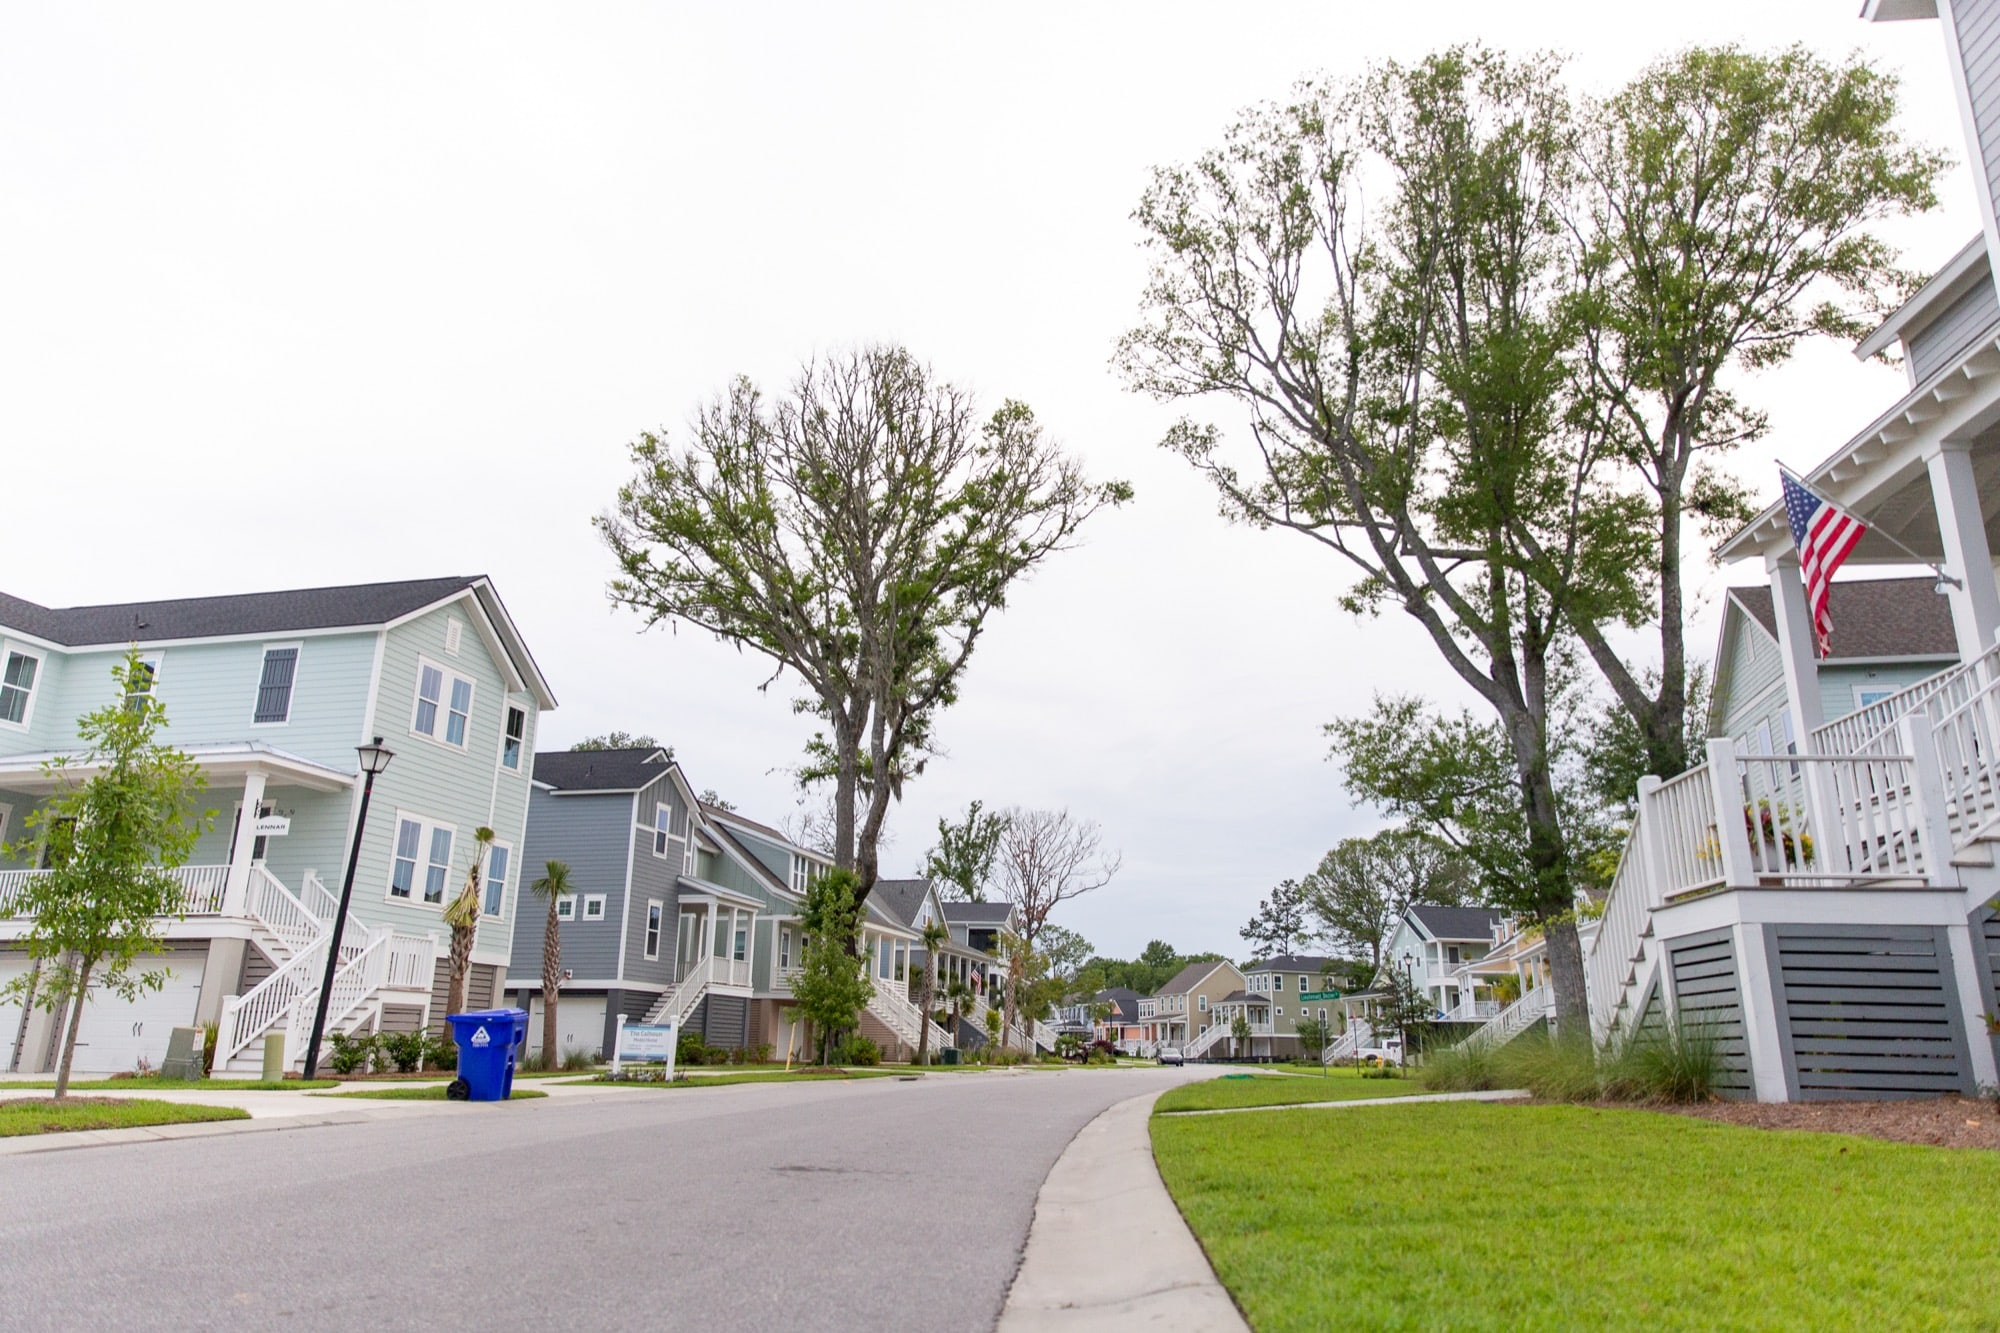 The Stonoview development is one of many in Charleston, South Carolina's fast-growing suburbs that used fill dirt to elevate homes  above the floodplain. (Ellen O'Brien/News21)